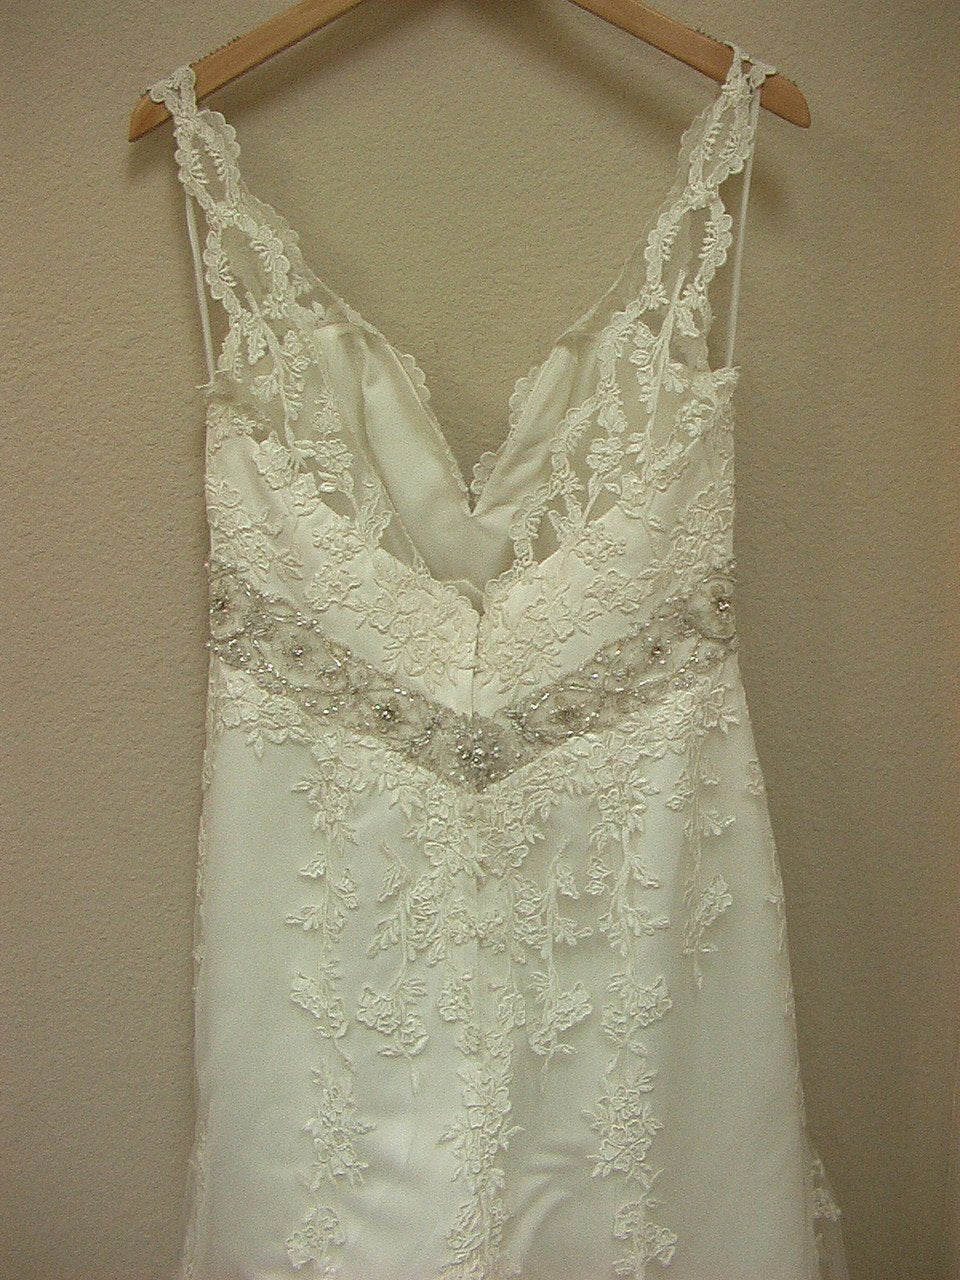 Allure 2250 Ivory/Silver size 10 In Stock Wedding Dress - Tom's Bridal